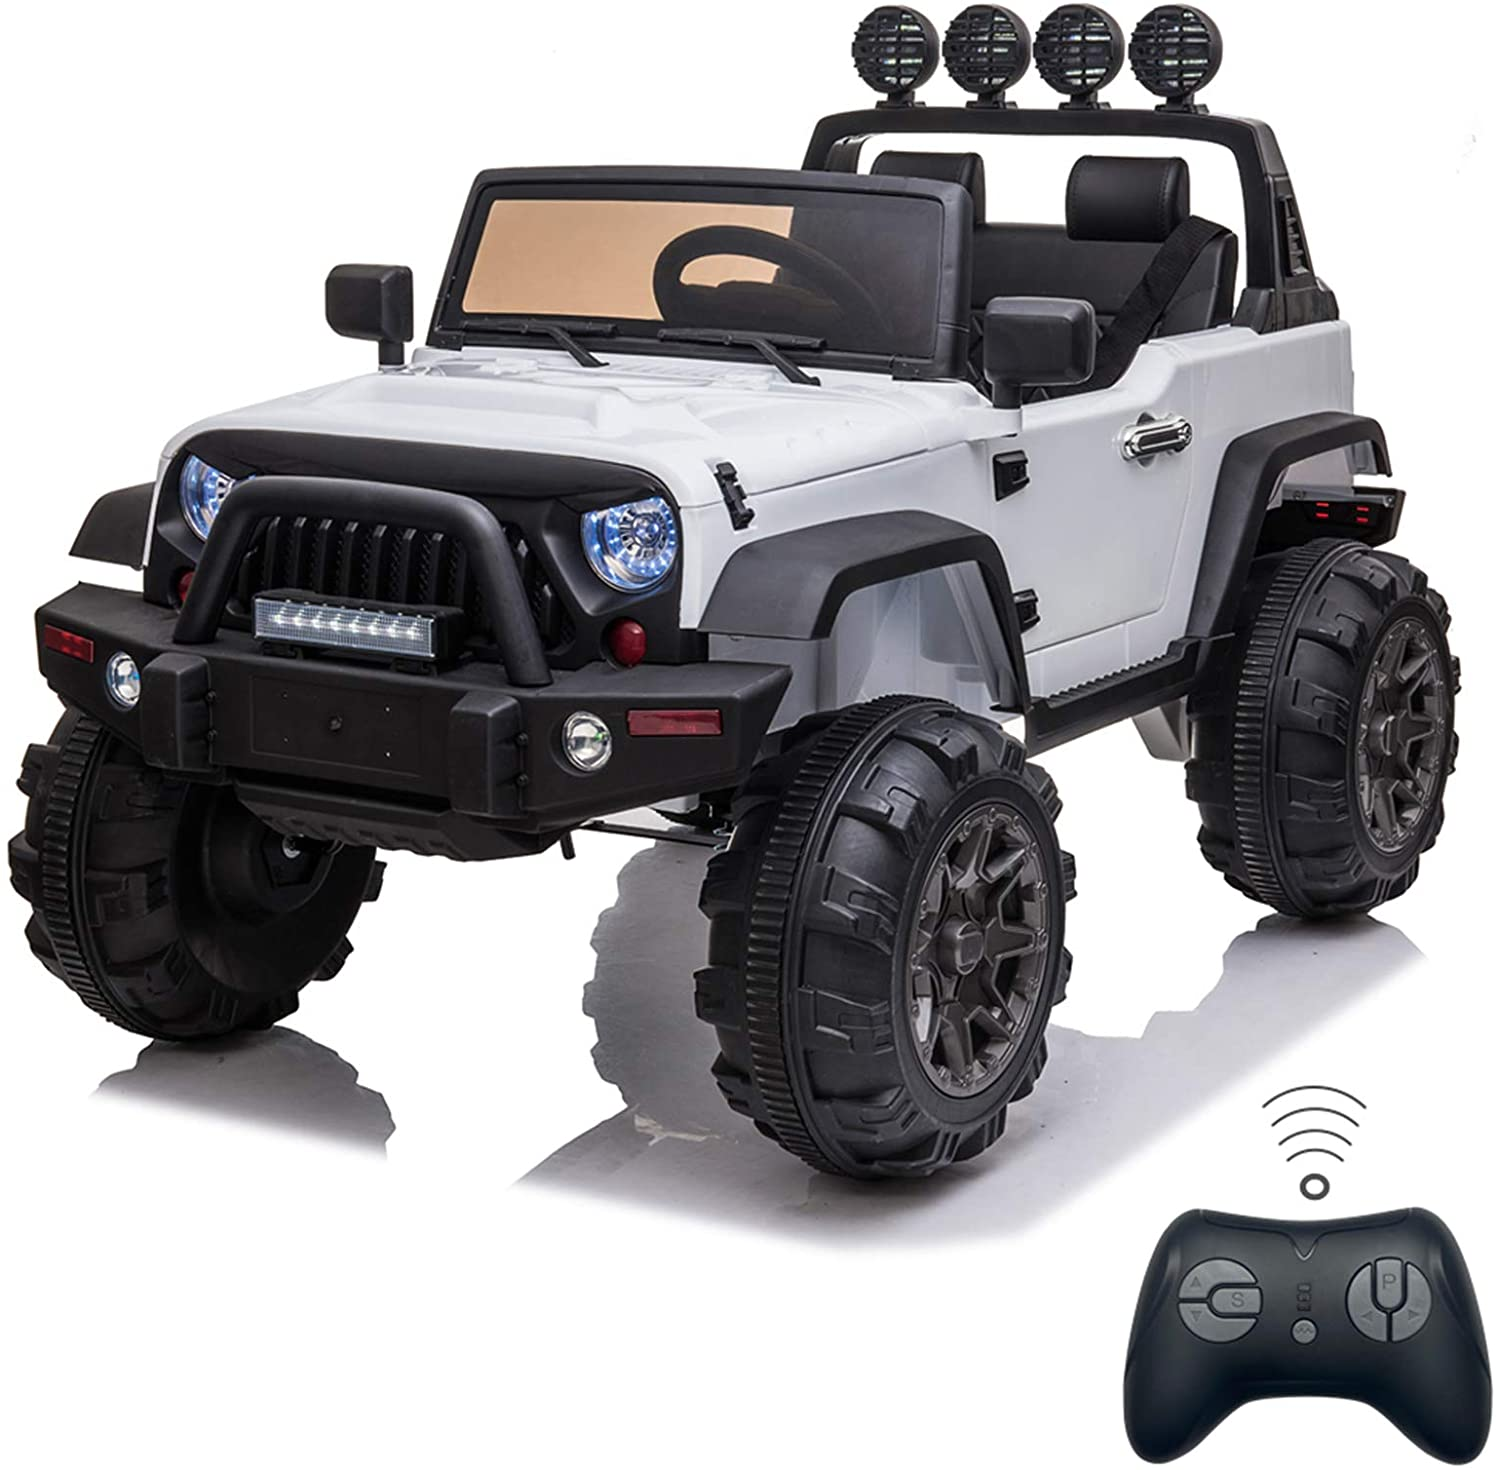 Peitten Upgrade Kids Ride On Car Off Road Truck | 12V Kids Electric Vehicles SUV Truck with 2.4GHZ Remote Control & 3 Speed Transmission & MP3 Player & LED Lights, Maximum Load 30KG/66LBS (White)